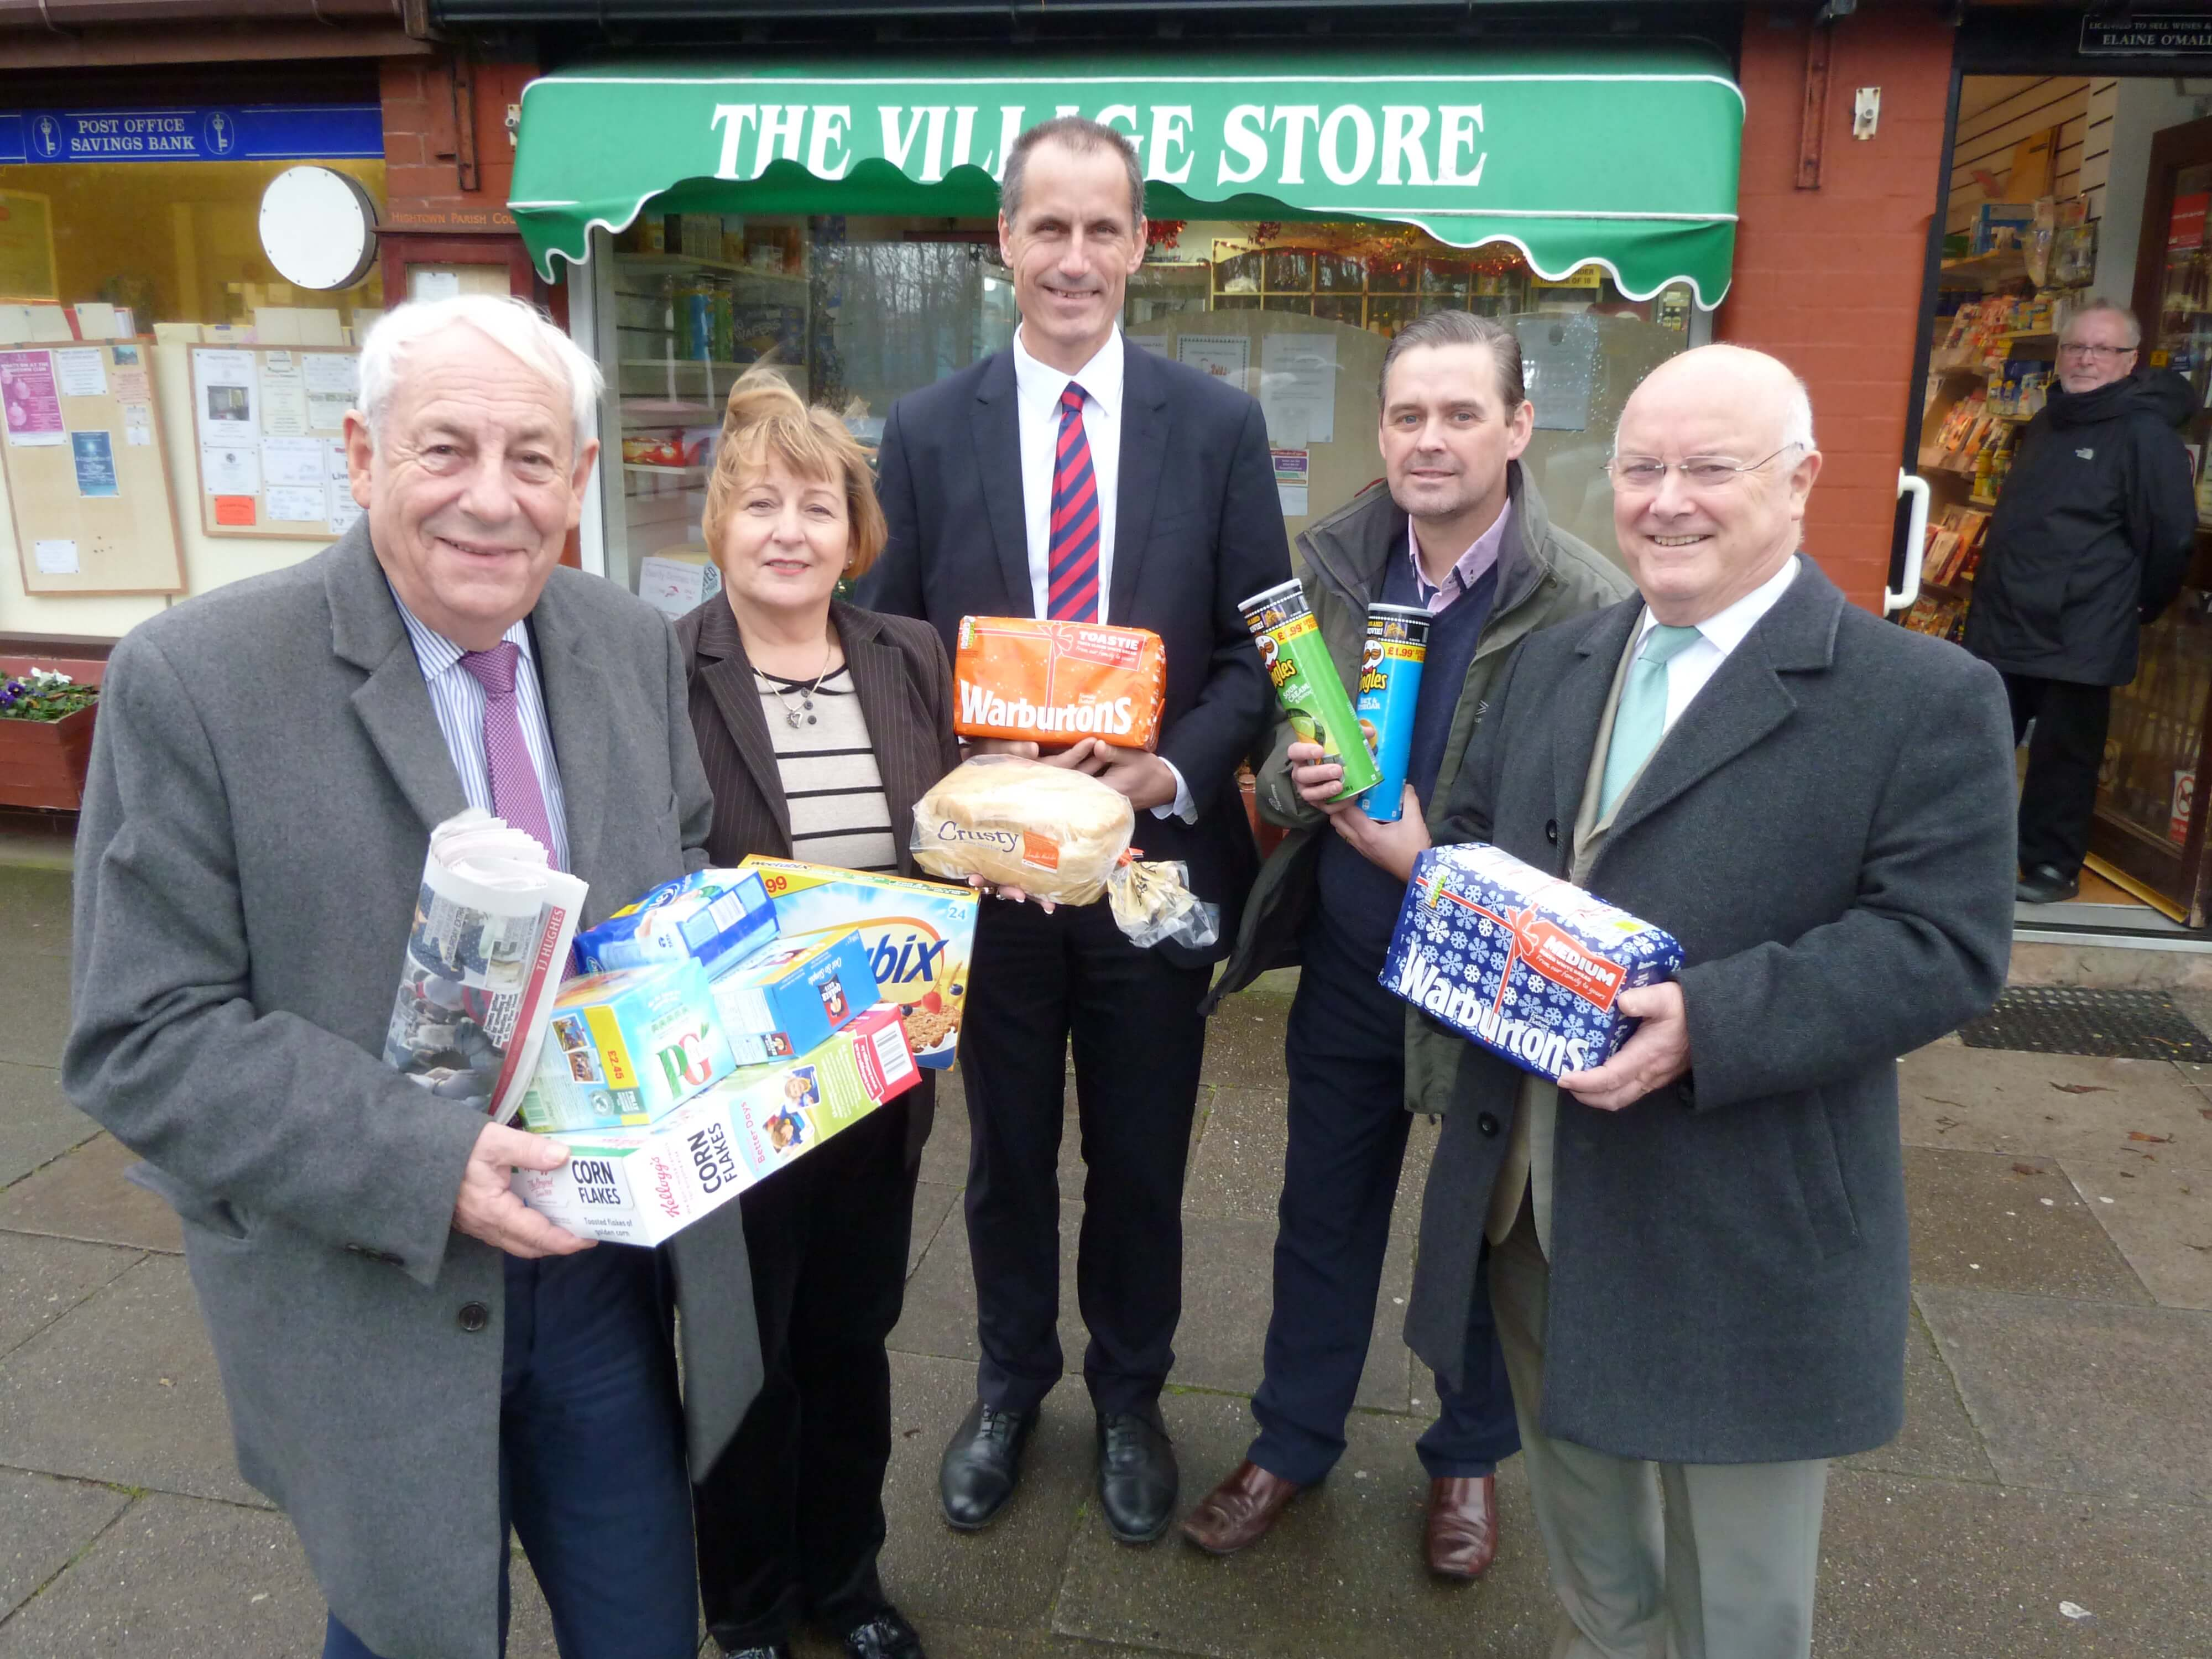 Bill Esterson and Federation of Small Businesses national chairman John Allen and Merseyside branch chairman Chris Burgess at Hightown's The Village Store with owner Elaine O'Malley and Hightown's social media editor John McCall.